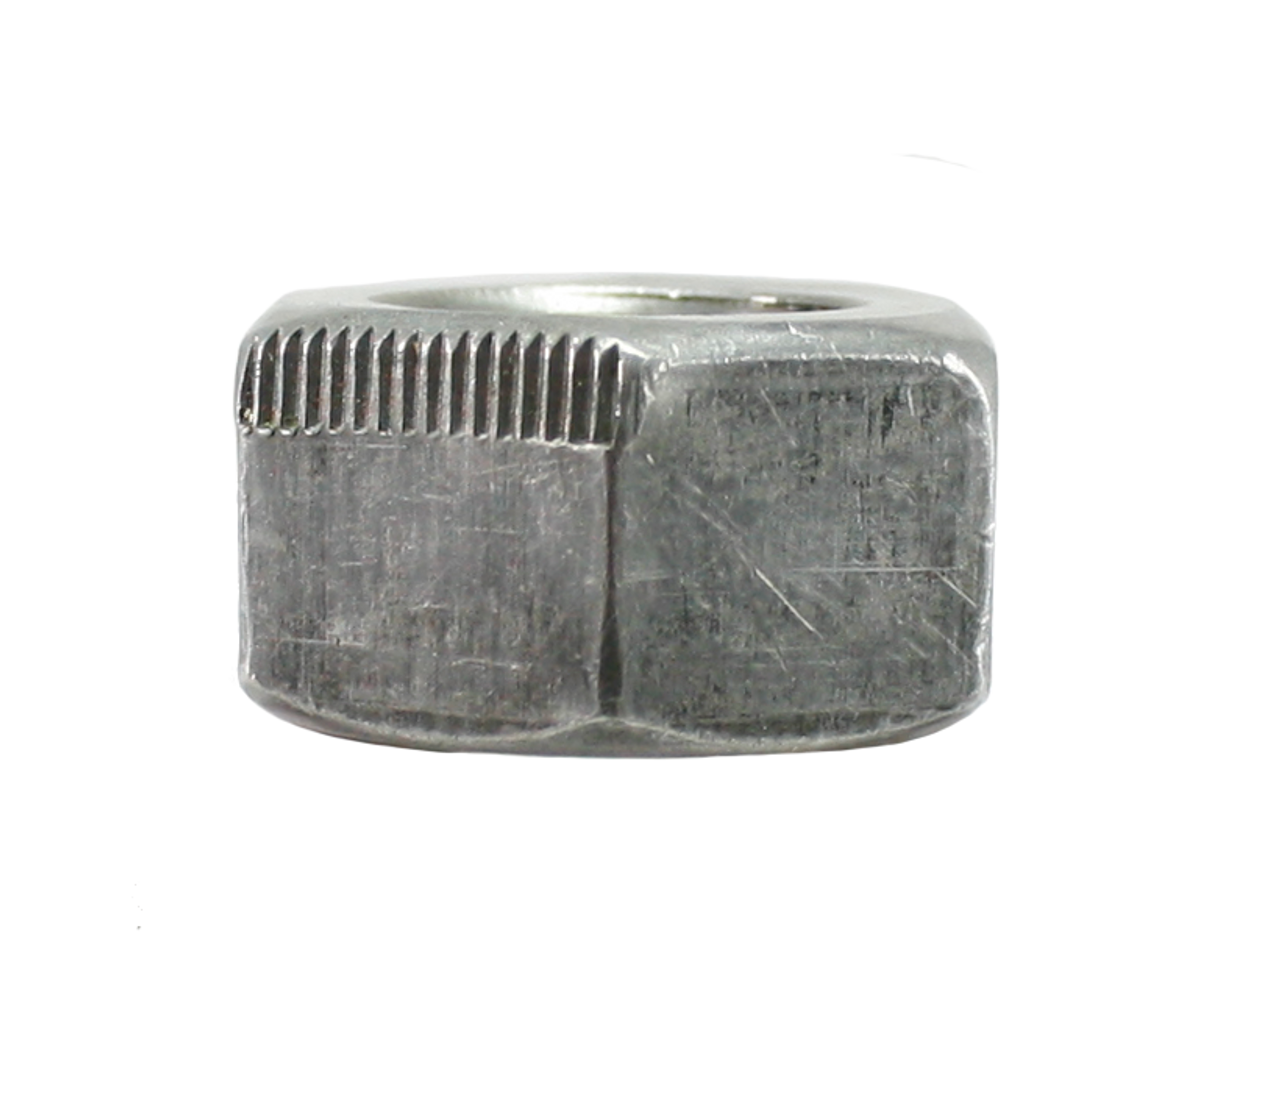 Spring Bolt with Nut